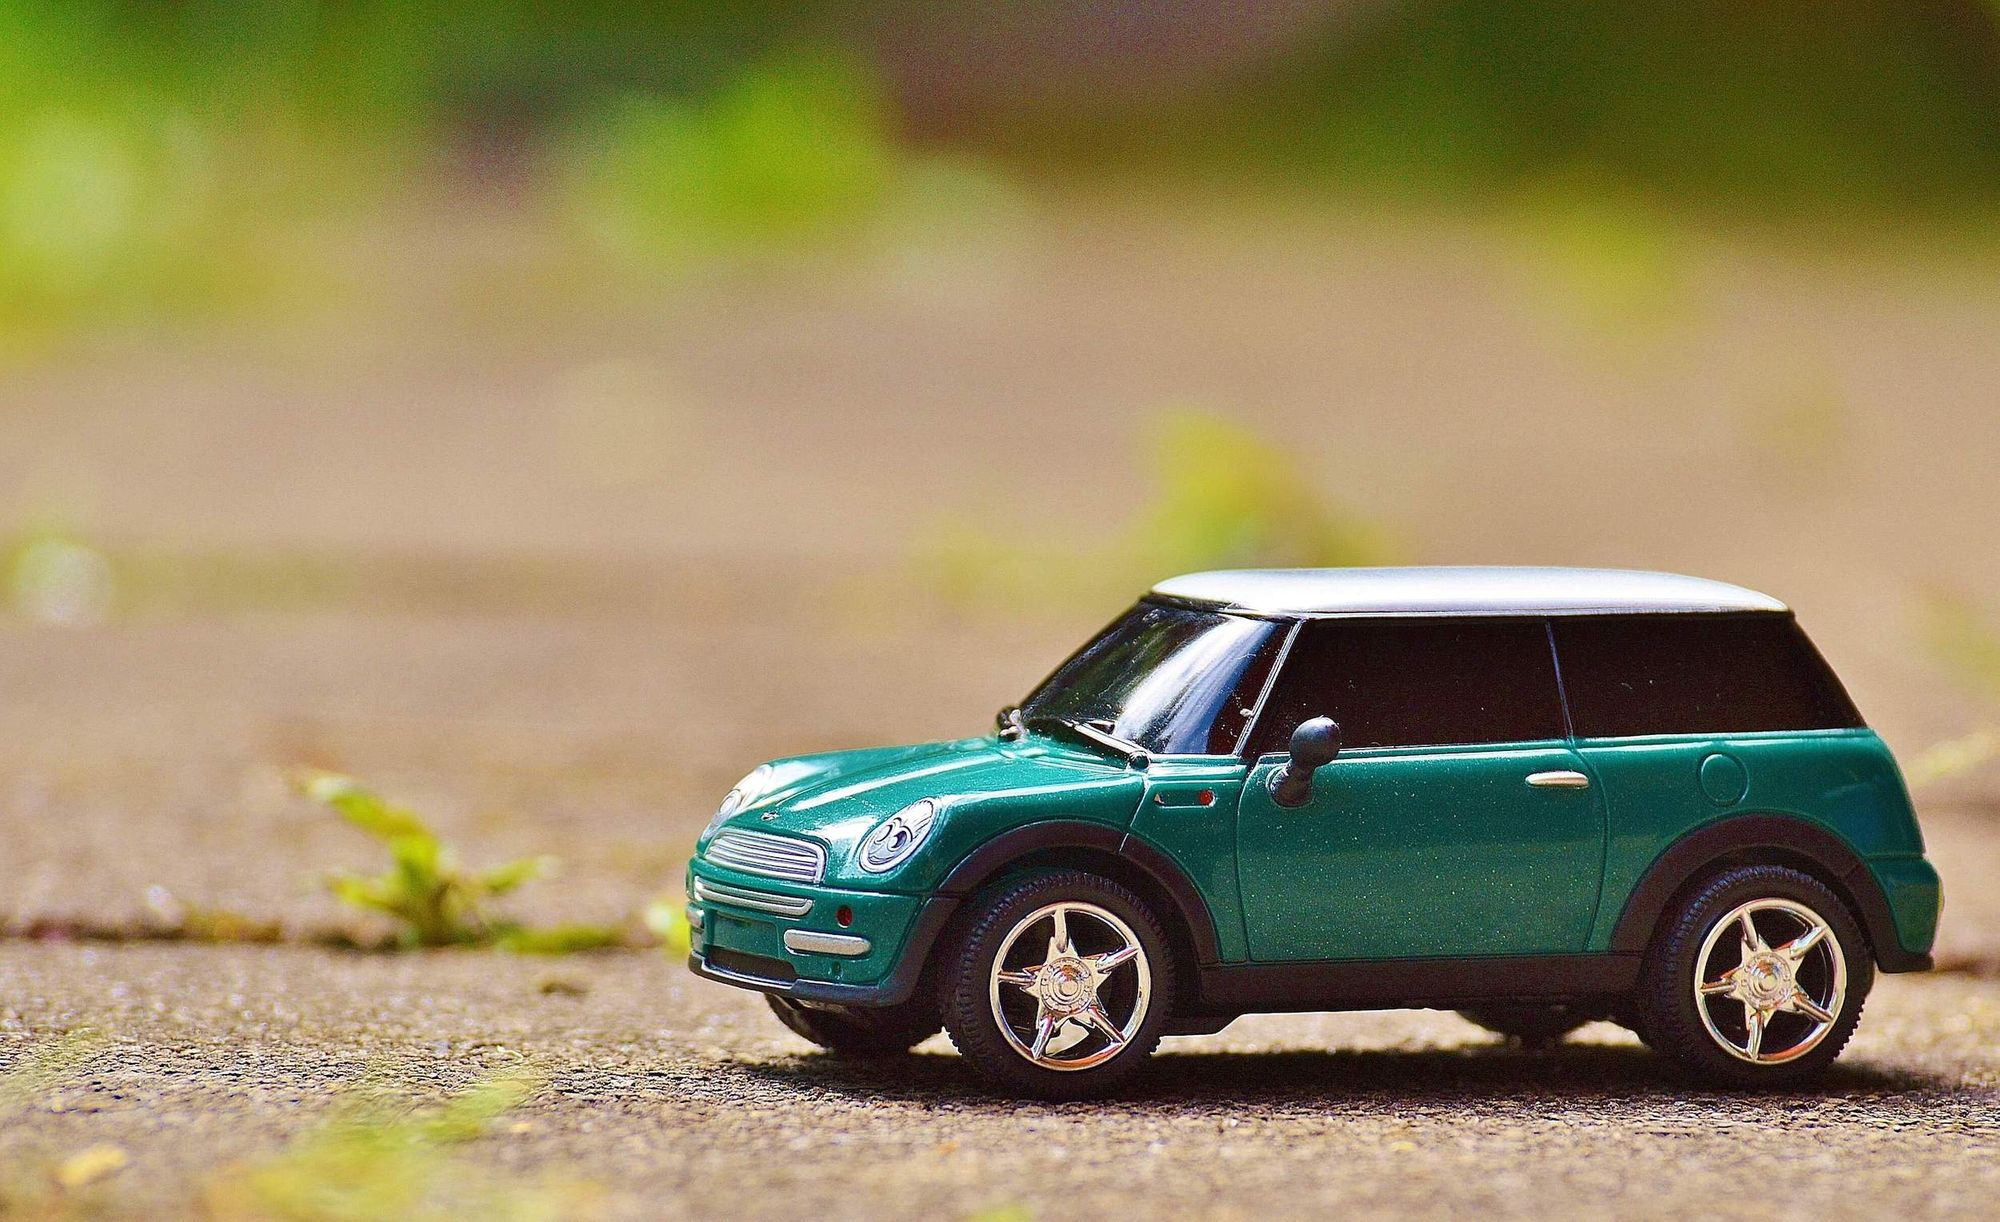 miniature car on concrete with plants showing between the gaps